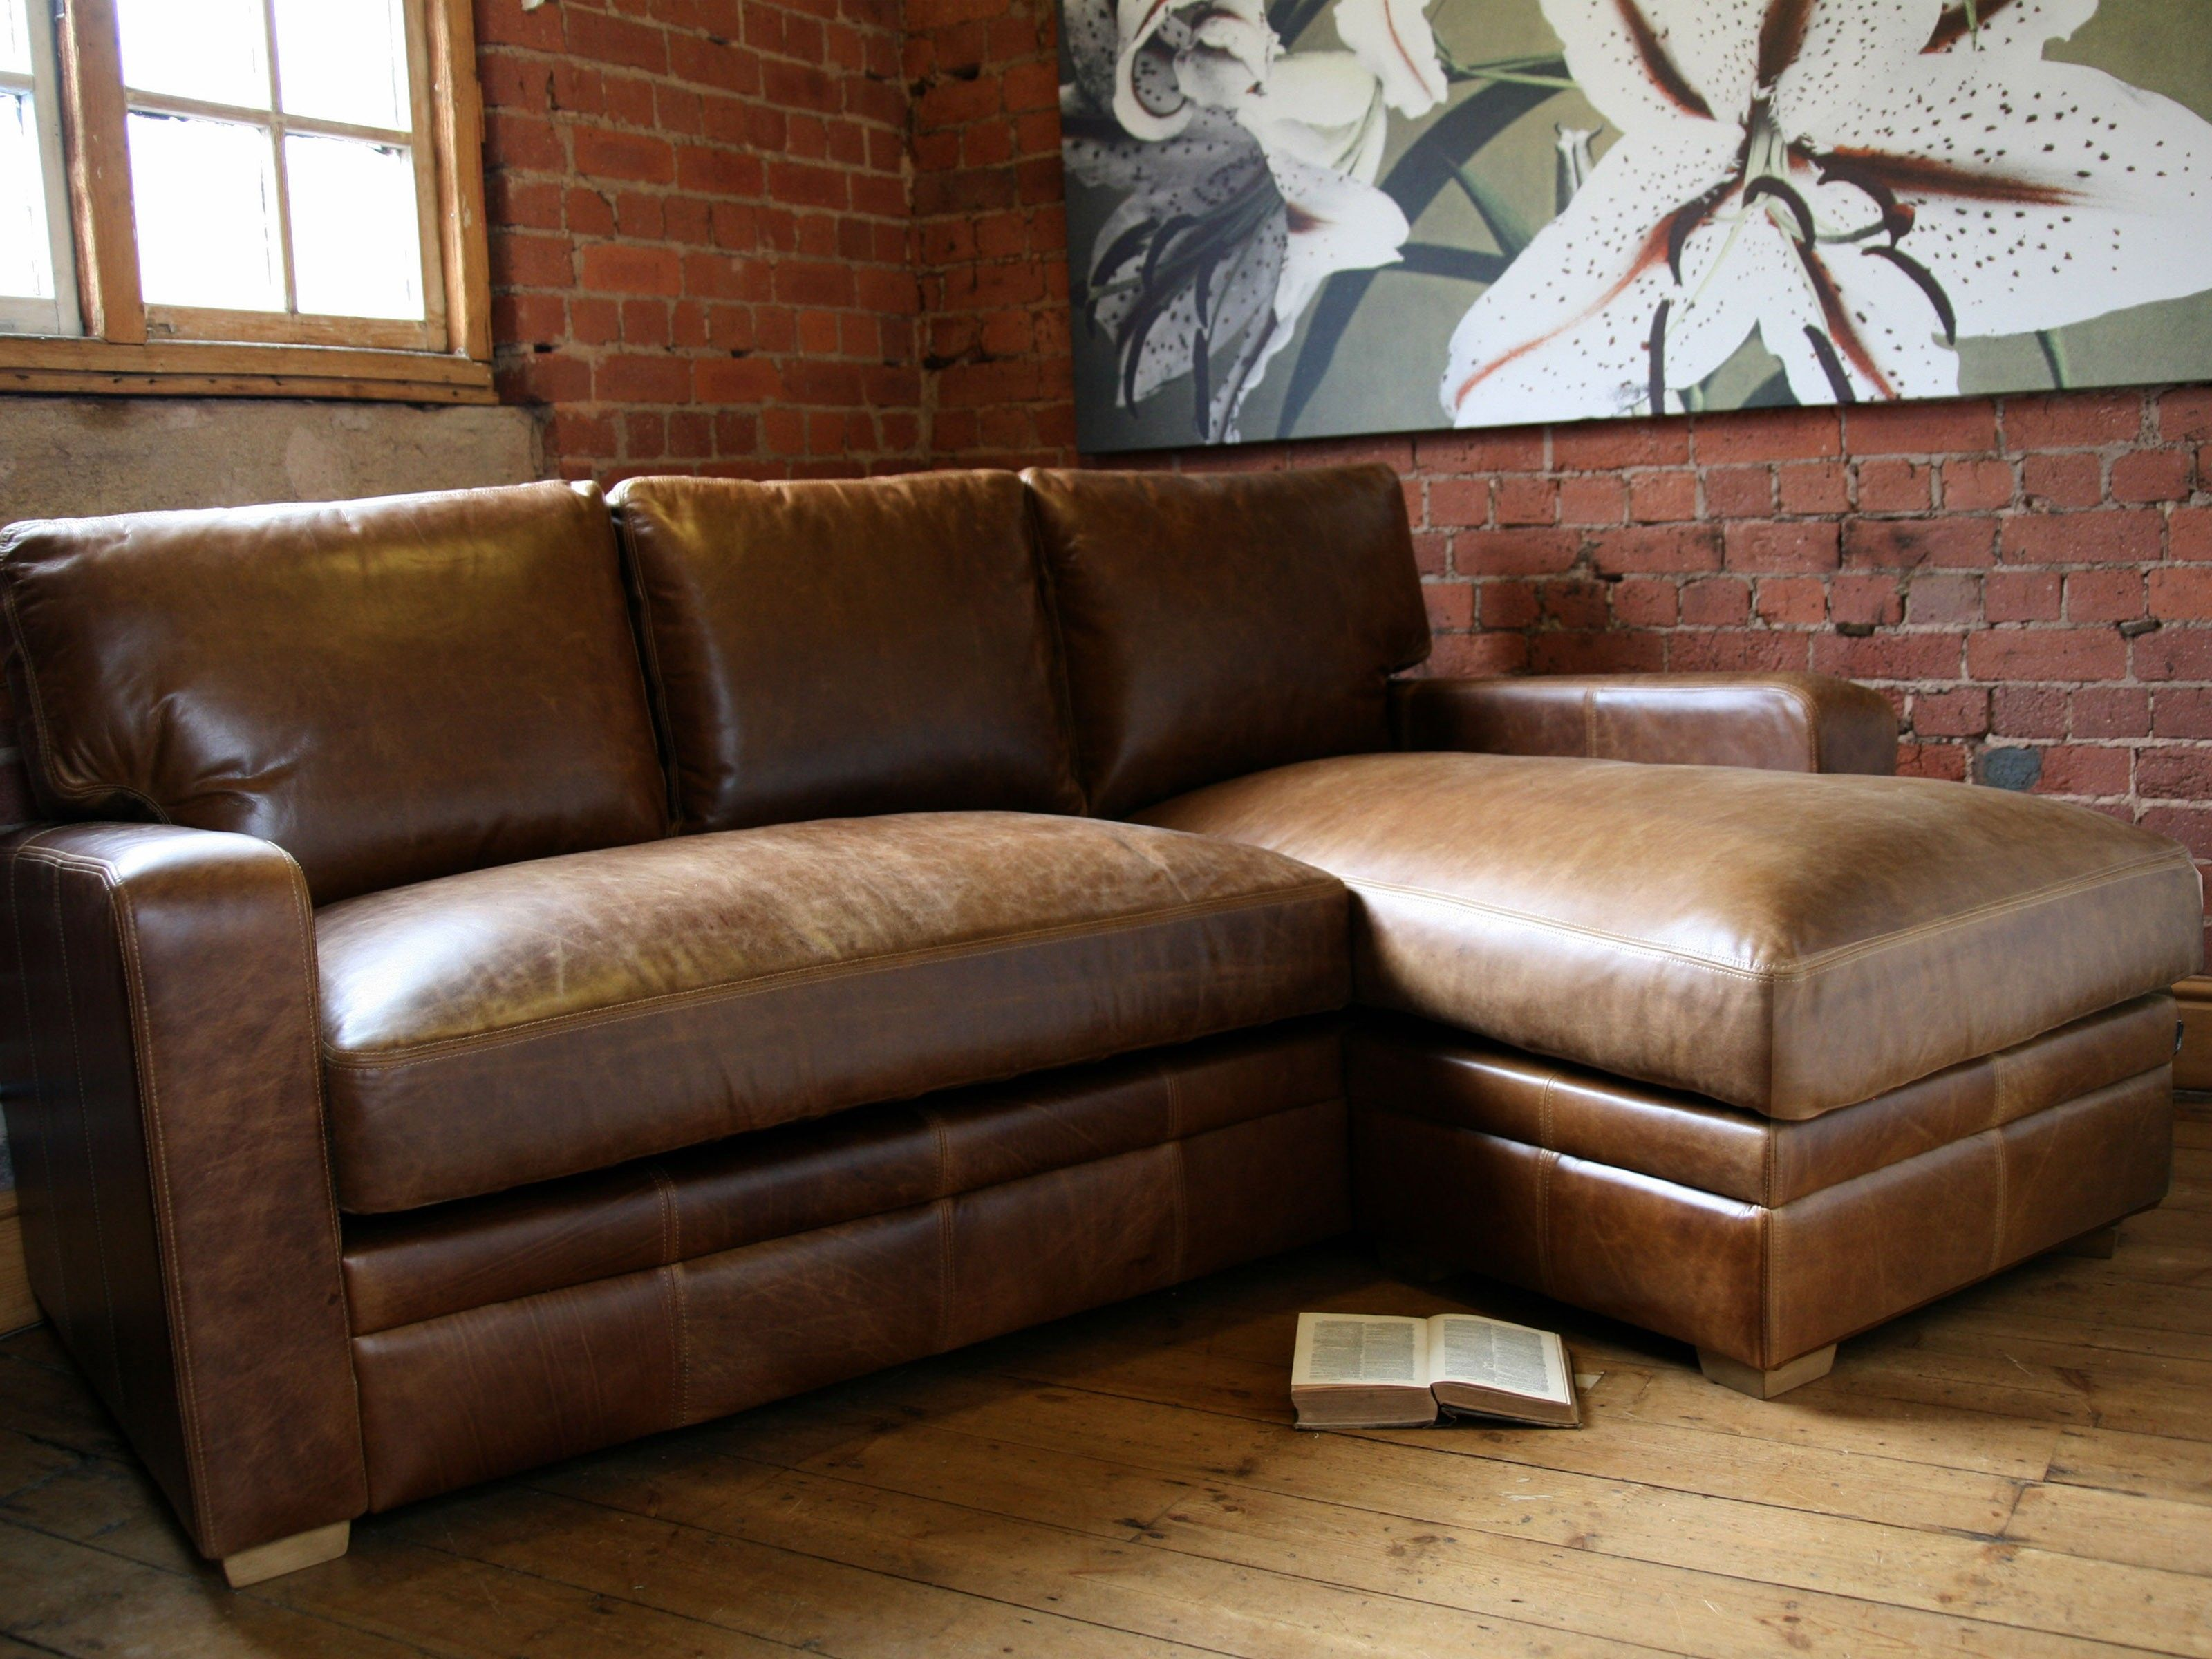 Full Grain Leather Furniture Stores Carla Salotti Dima Salotti